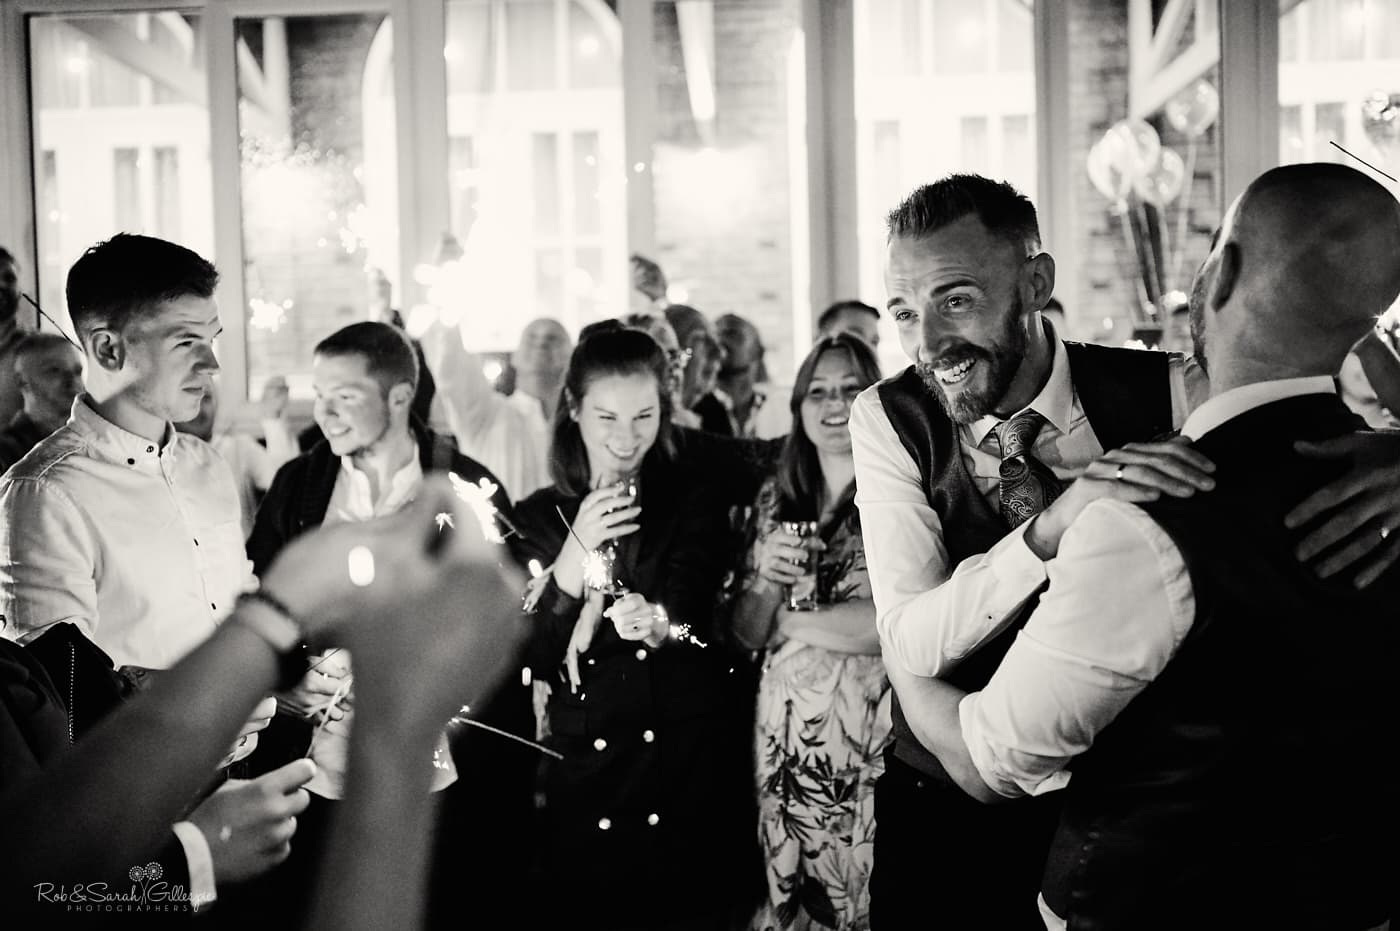 Two grooms surrounded by wedding guests with sparklers at Moor Hall Hotel